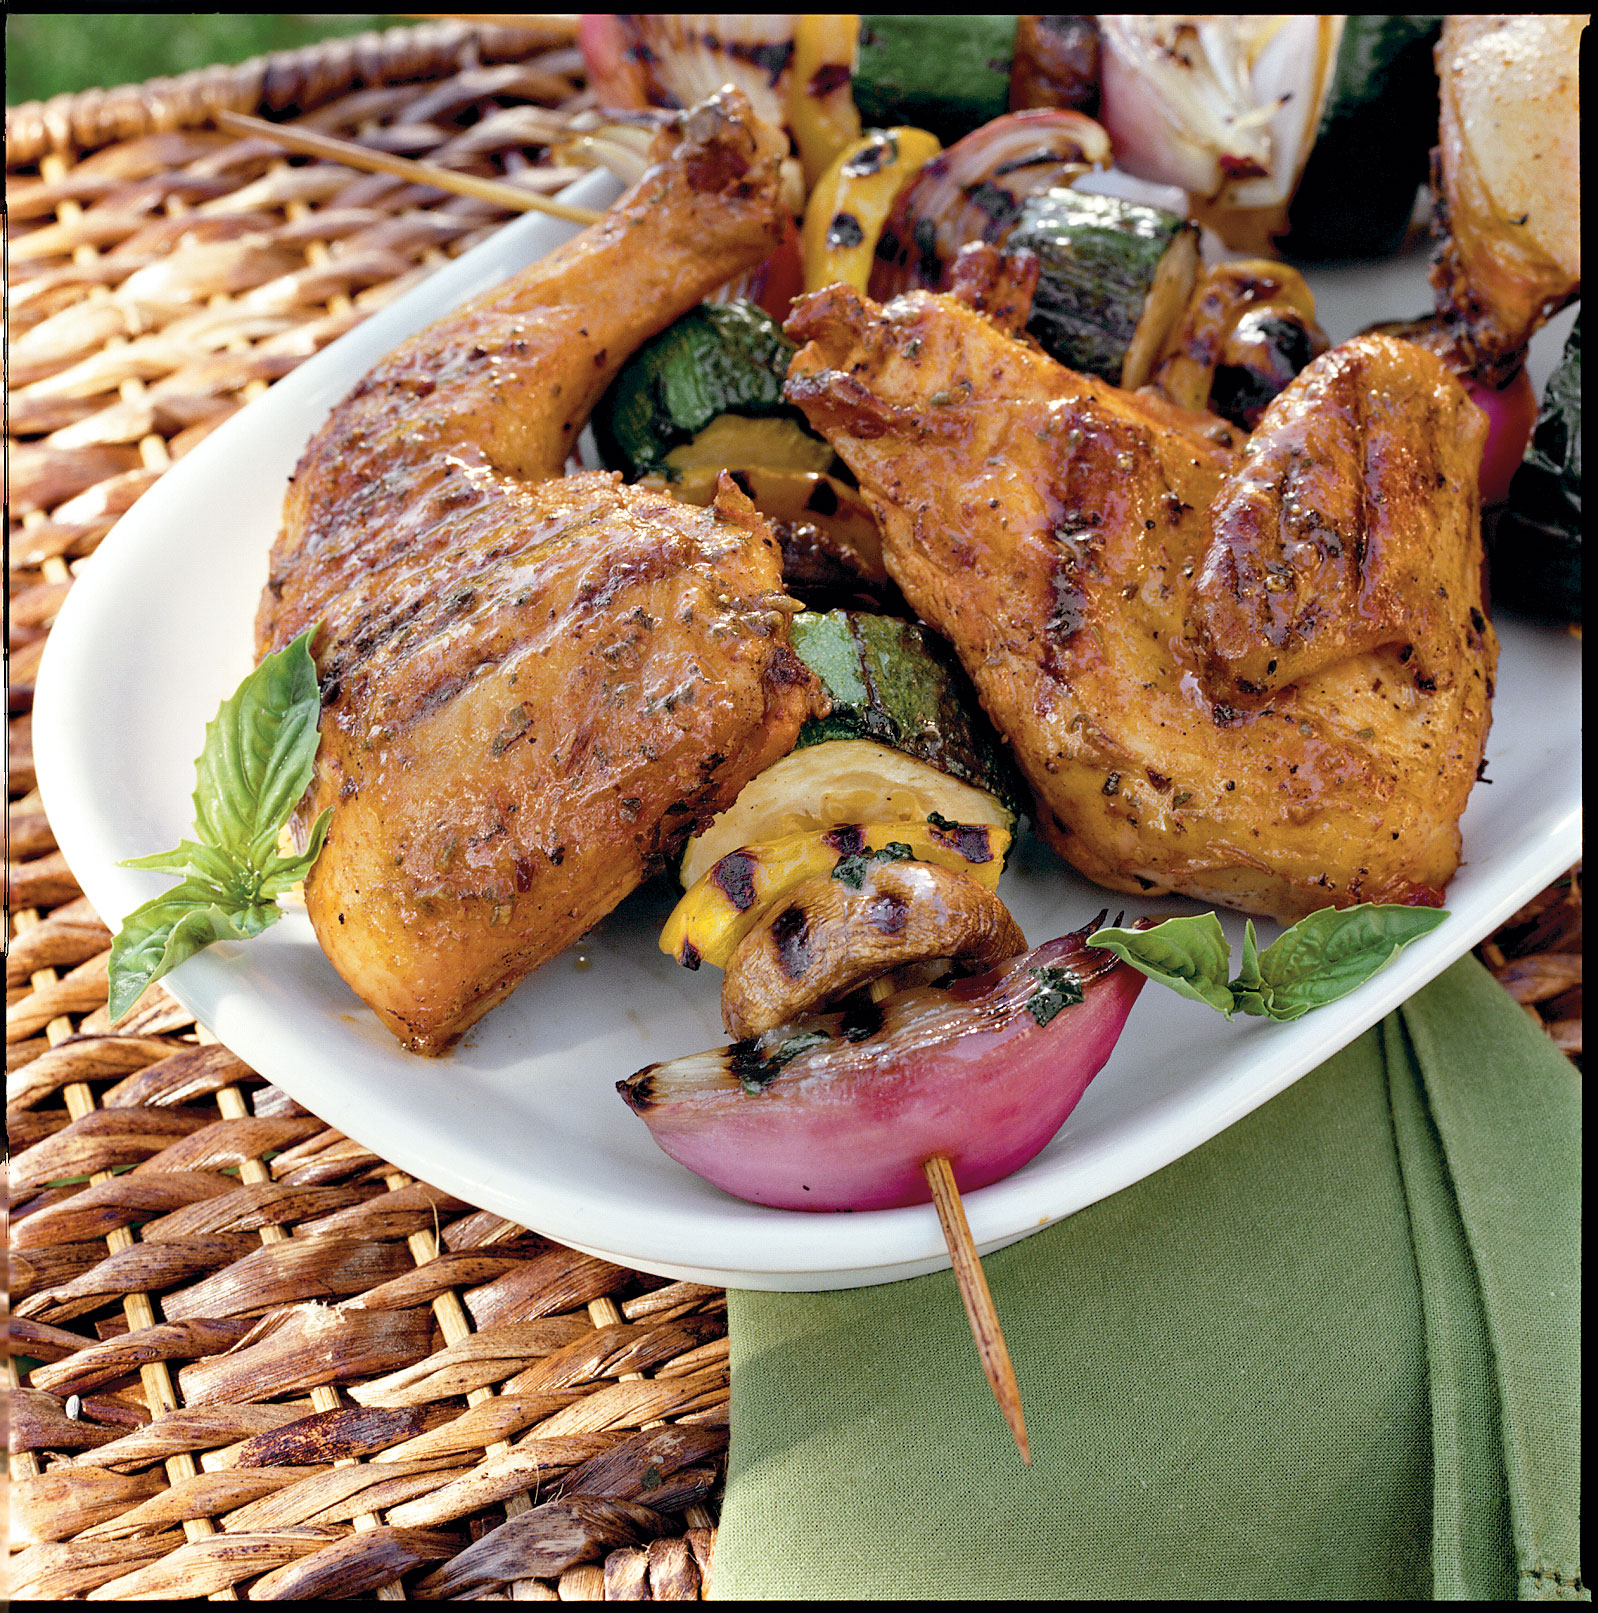 What's for Supper? Great Grilling (promo image)